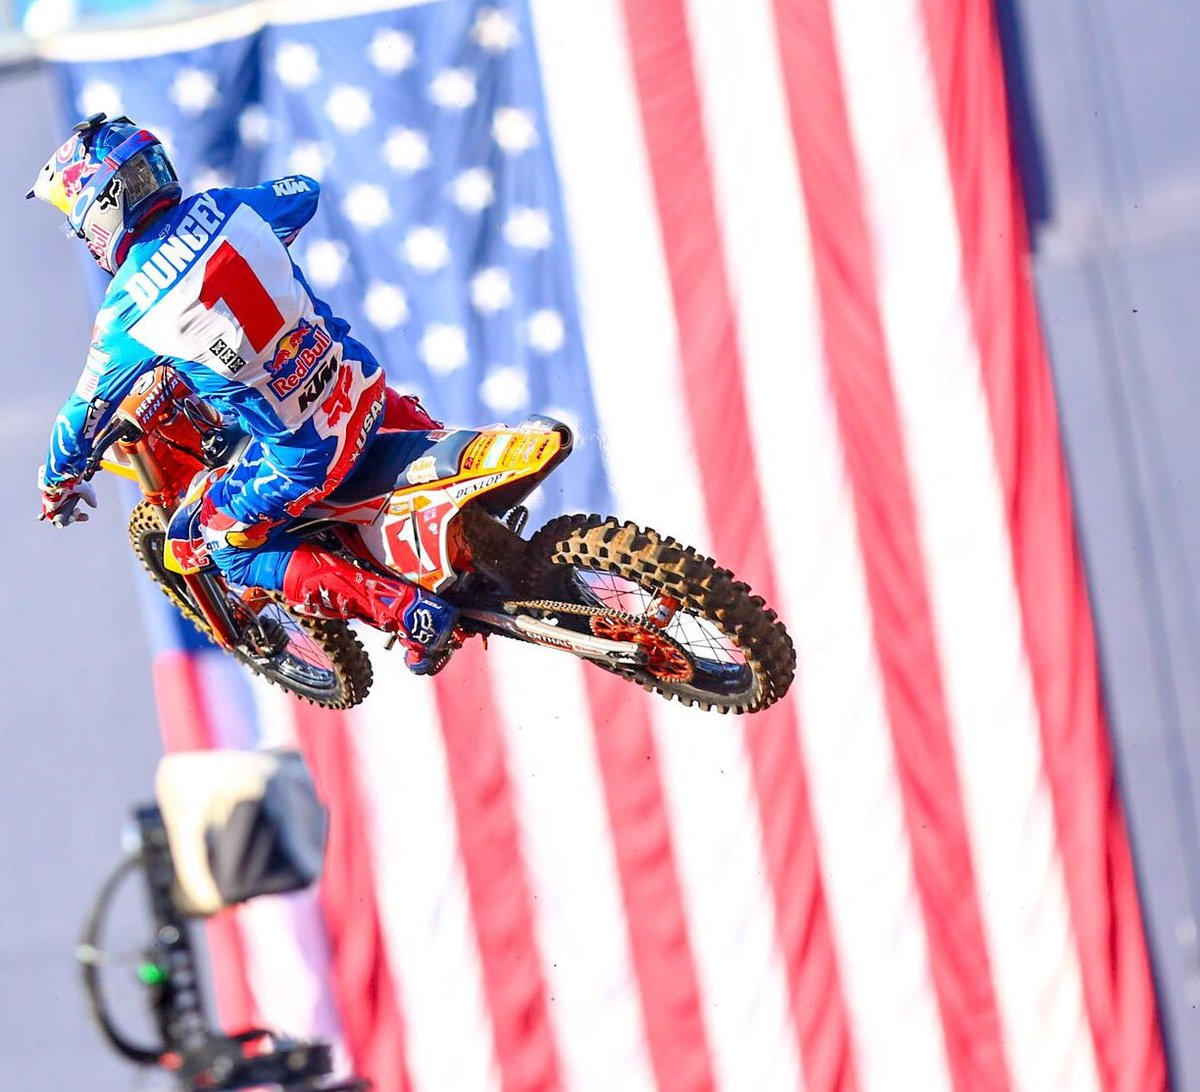 RT @SupercrossLIVE: Retweet if you're stoked for 4th of July Weekend! 🇺🇸💥 #SupercrossLIVE https://t.co/ZHUCJOd4bD